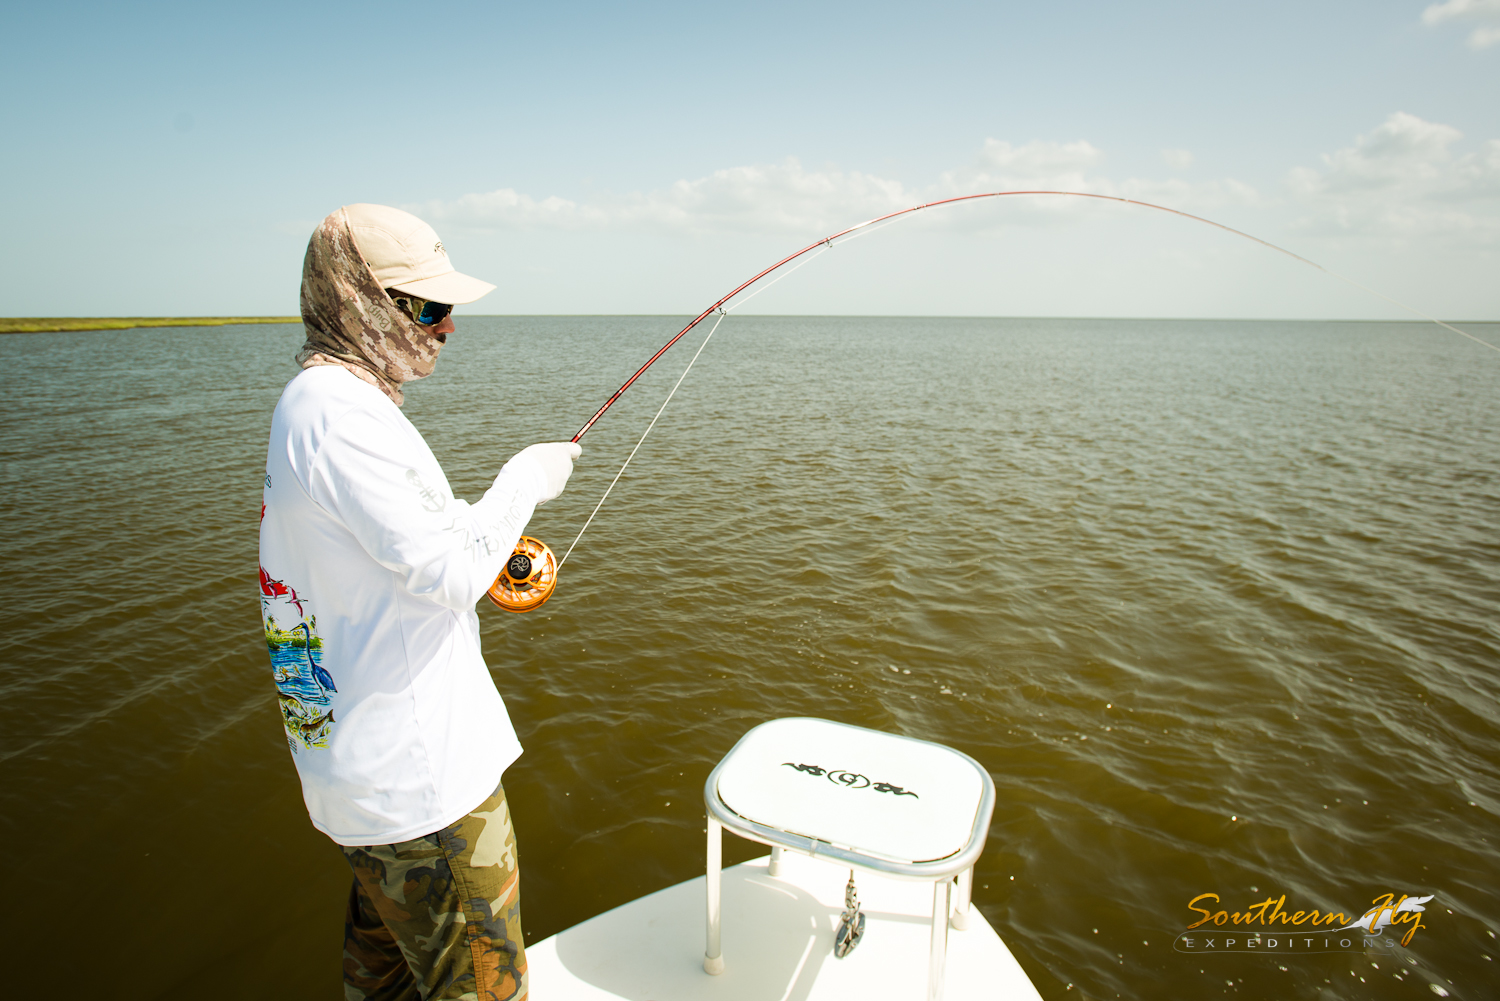 Fly Fishing New Orleans Louisiana with Southern Fly Expeditions and Brandon Keck